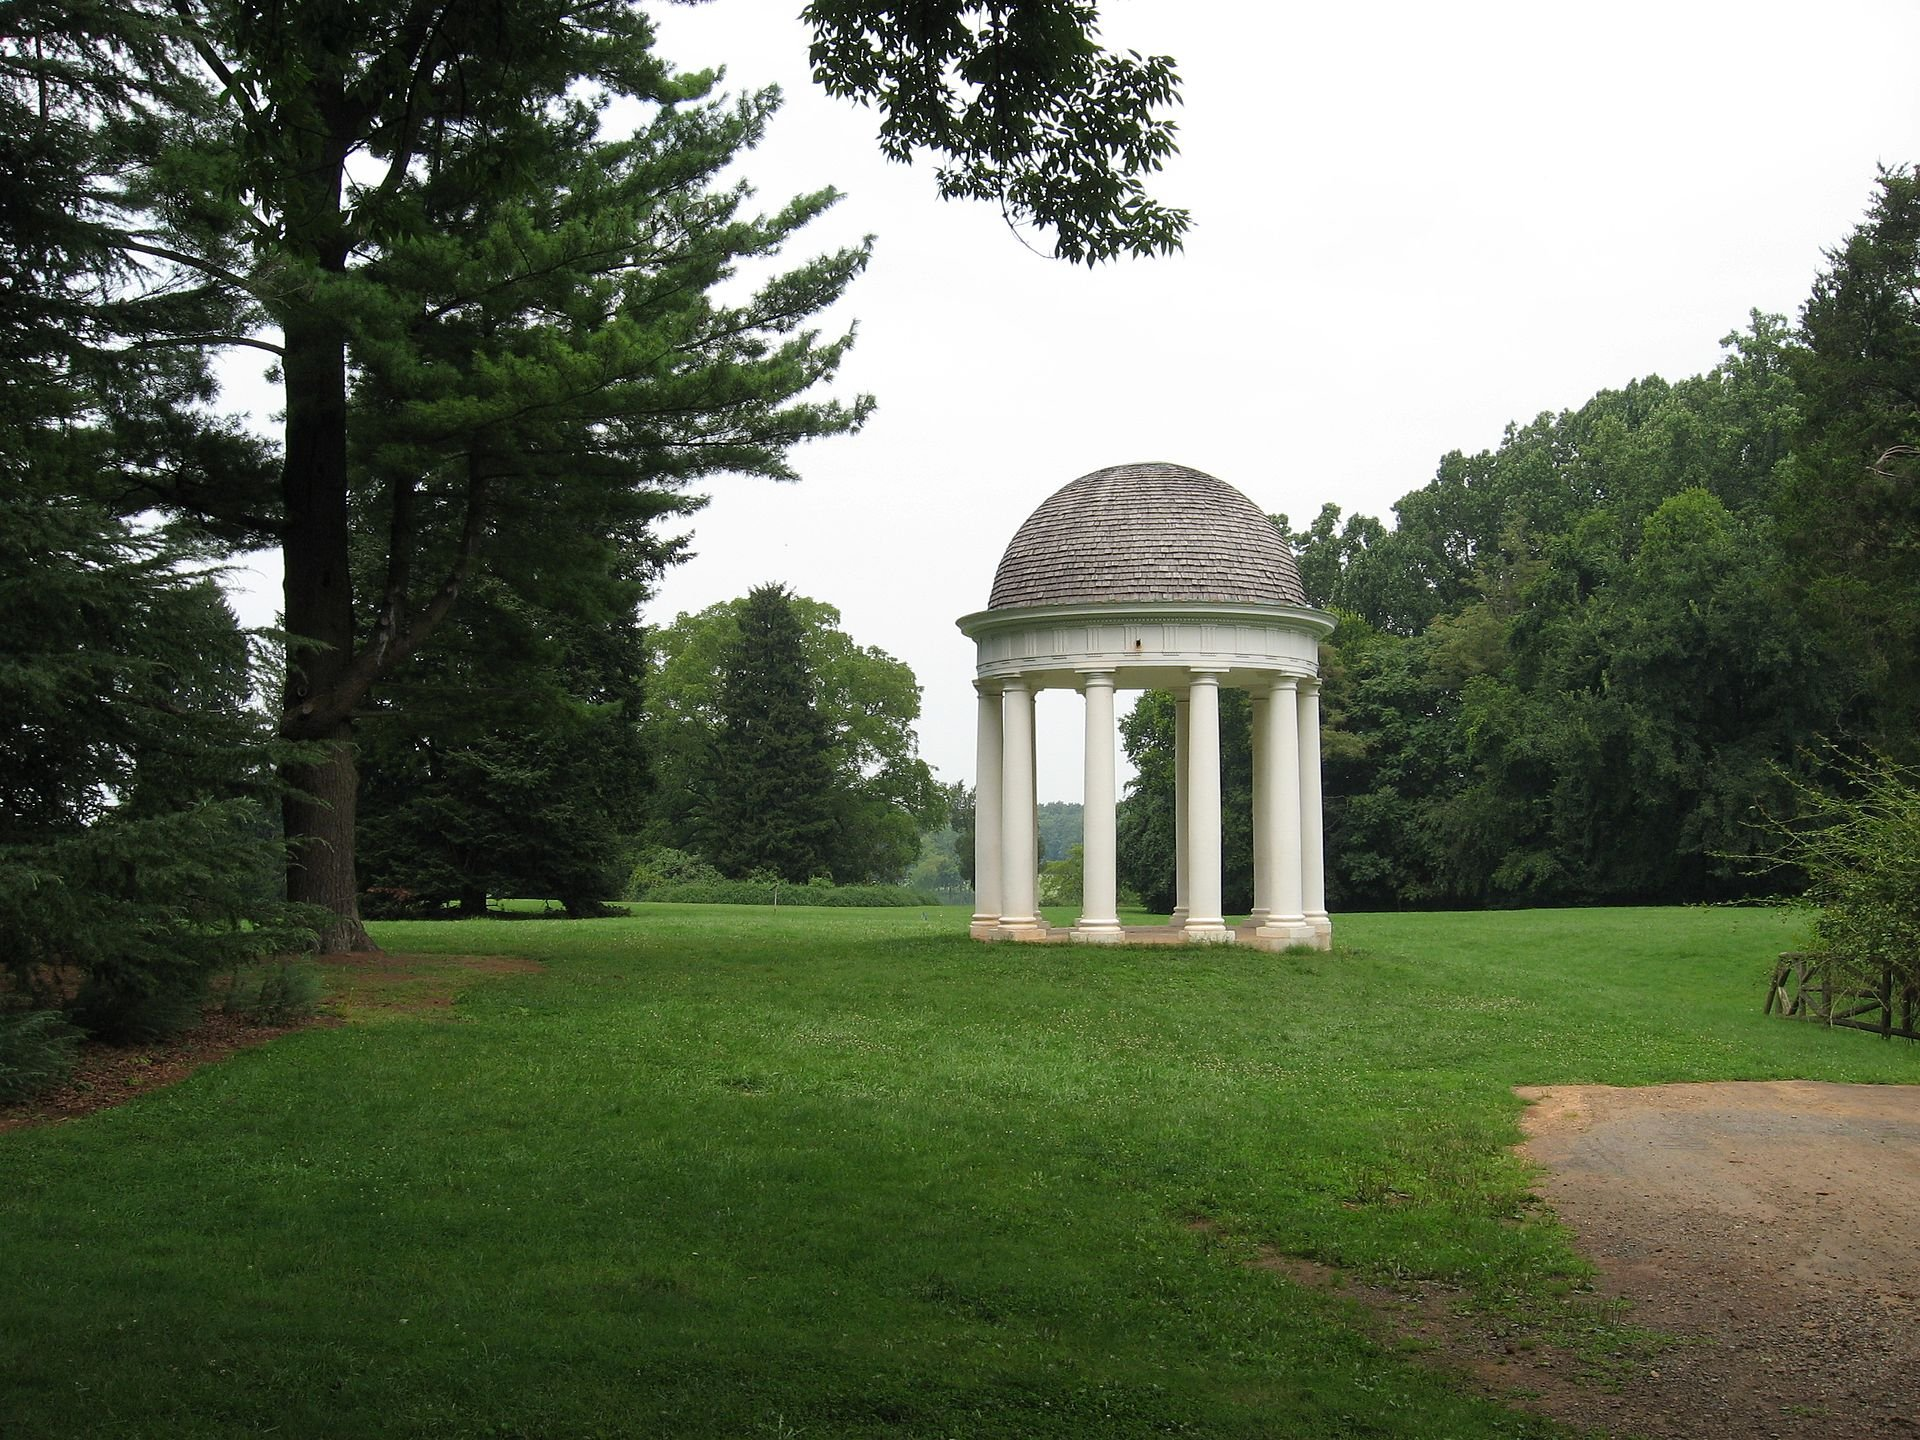 The Temple at Montpelier, inspired by architecture in ancient Greece, dates from James Madison's time. Wikimedia Commons.